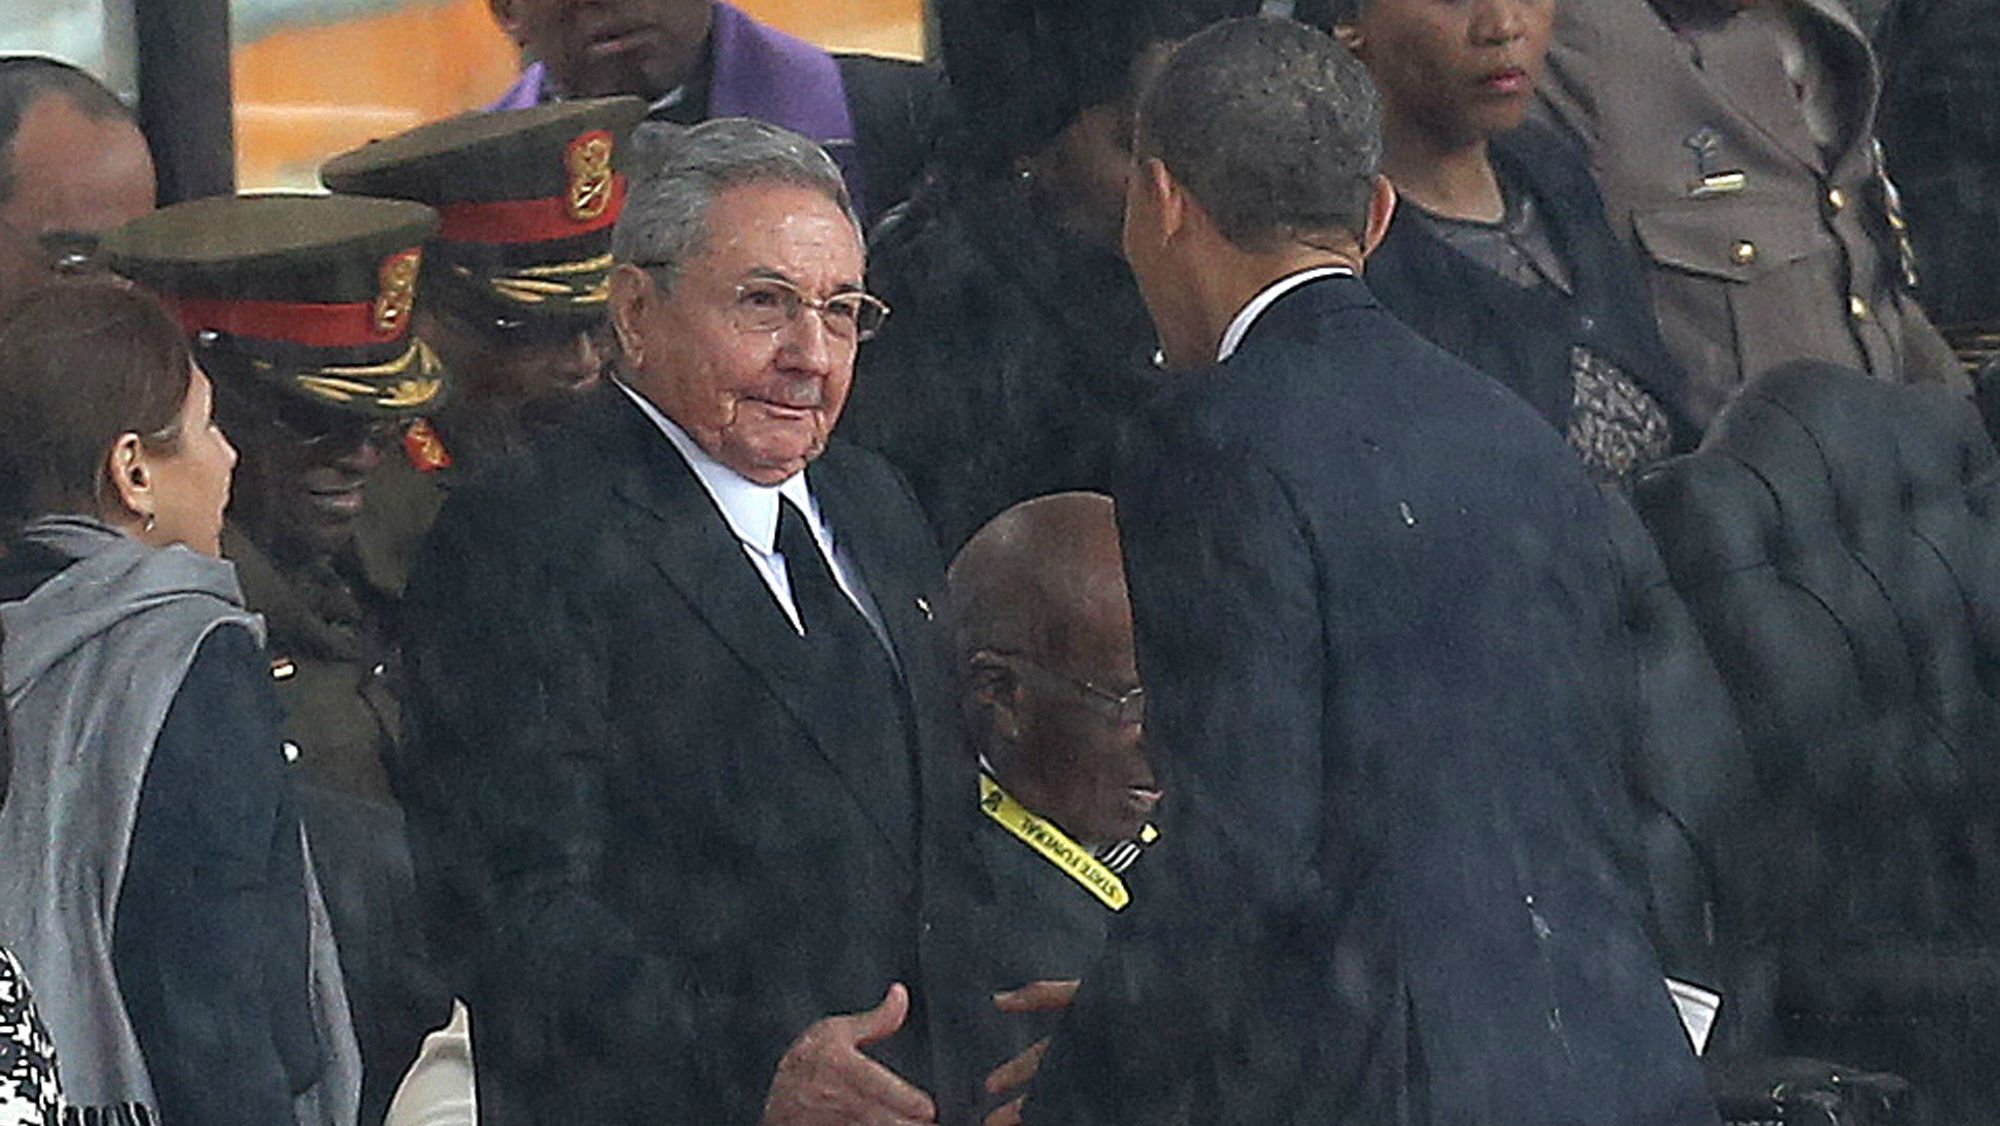 Raul Castro and Barack Obama shake hands at Nelson Mandela's funeral.